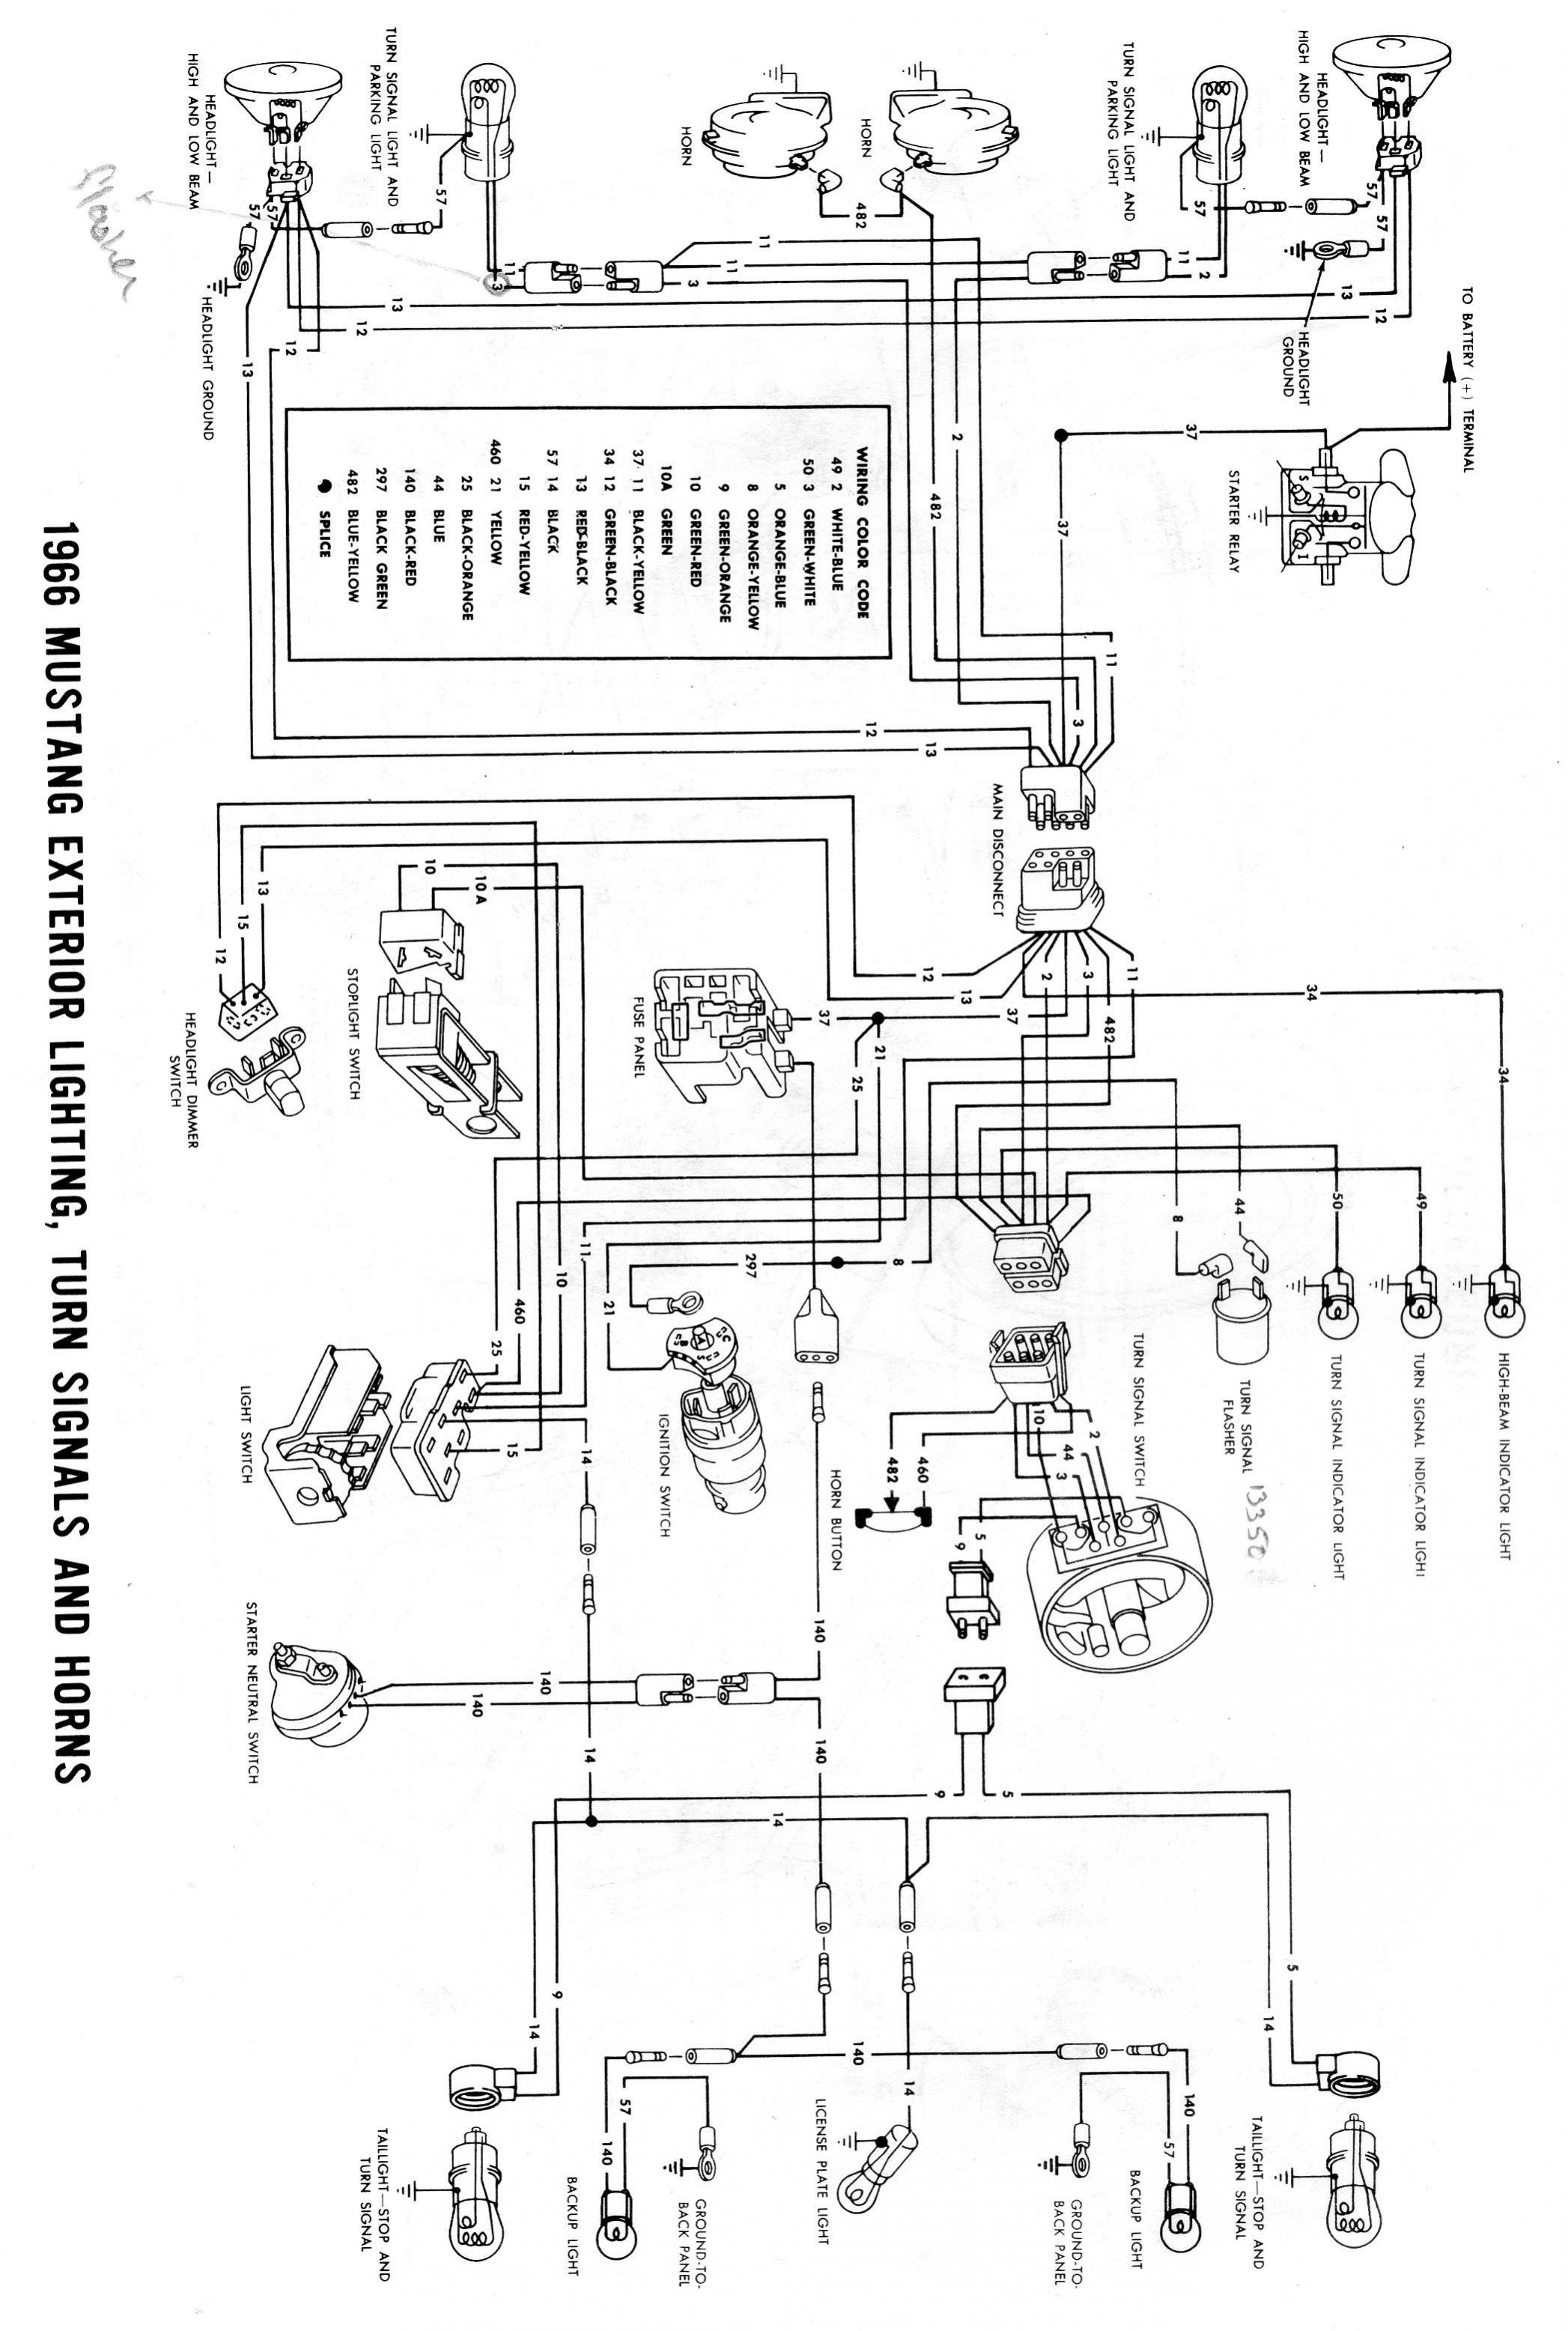 Basic Turn Signal Wiring Diagram 1970 Chrysler Complete Atv Diagrams 70 Mustang Engine Enthusiast U2022 Rh Rasalibre Co And Brake